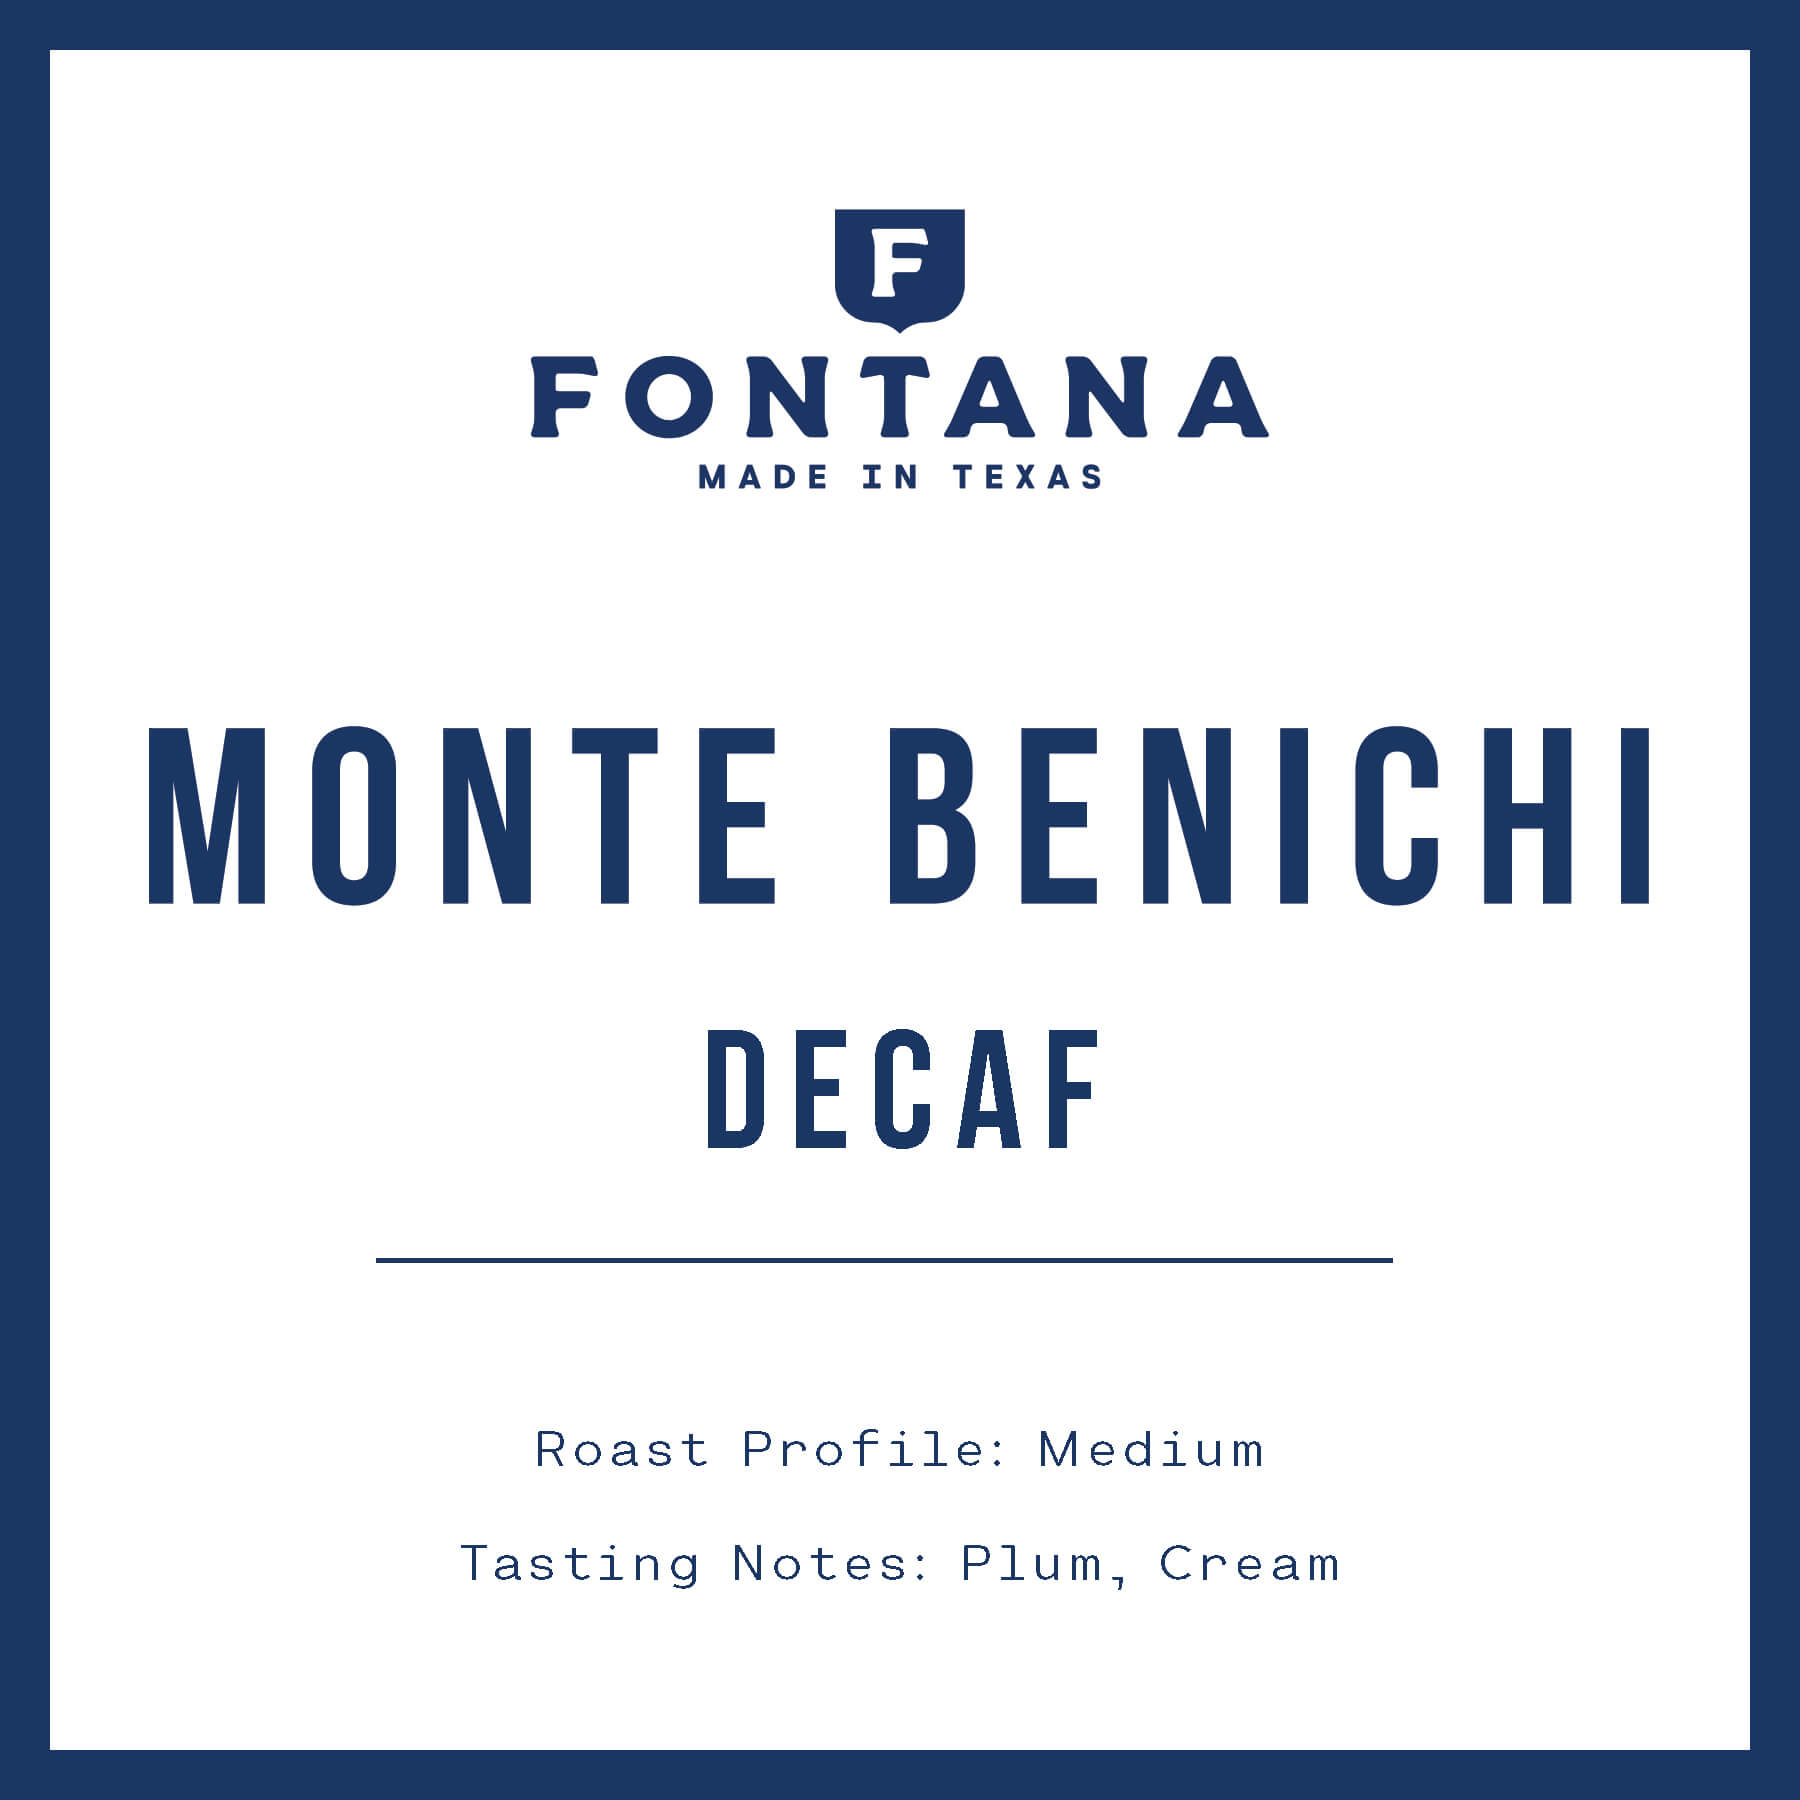 Monte Benichi Decaf from Fontana Coffee Roasters